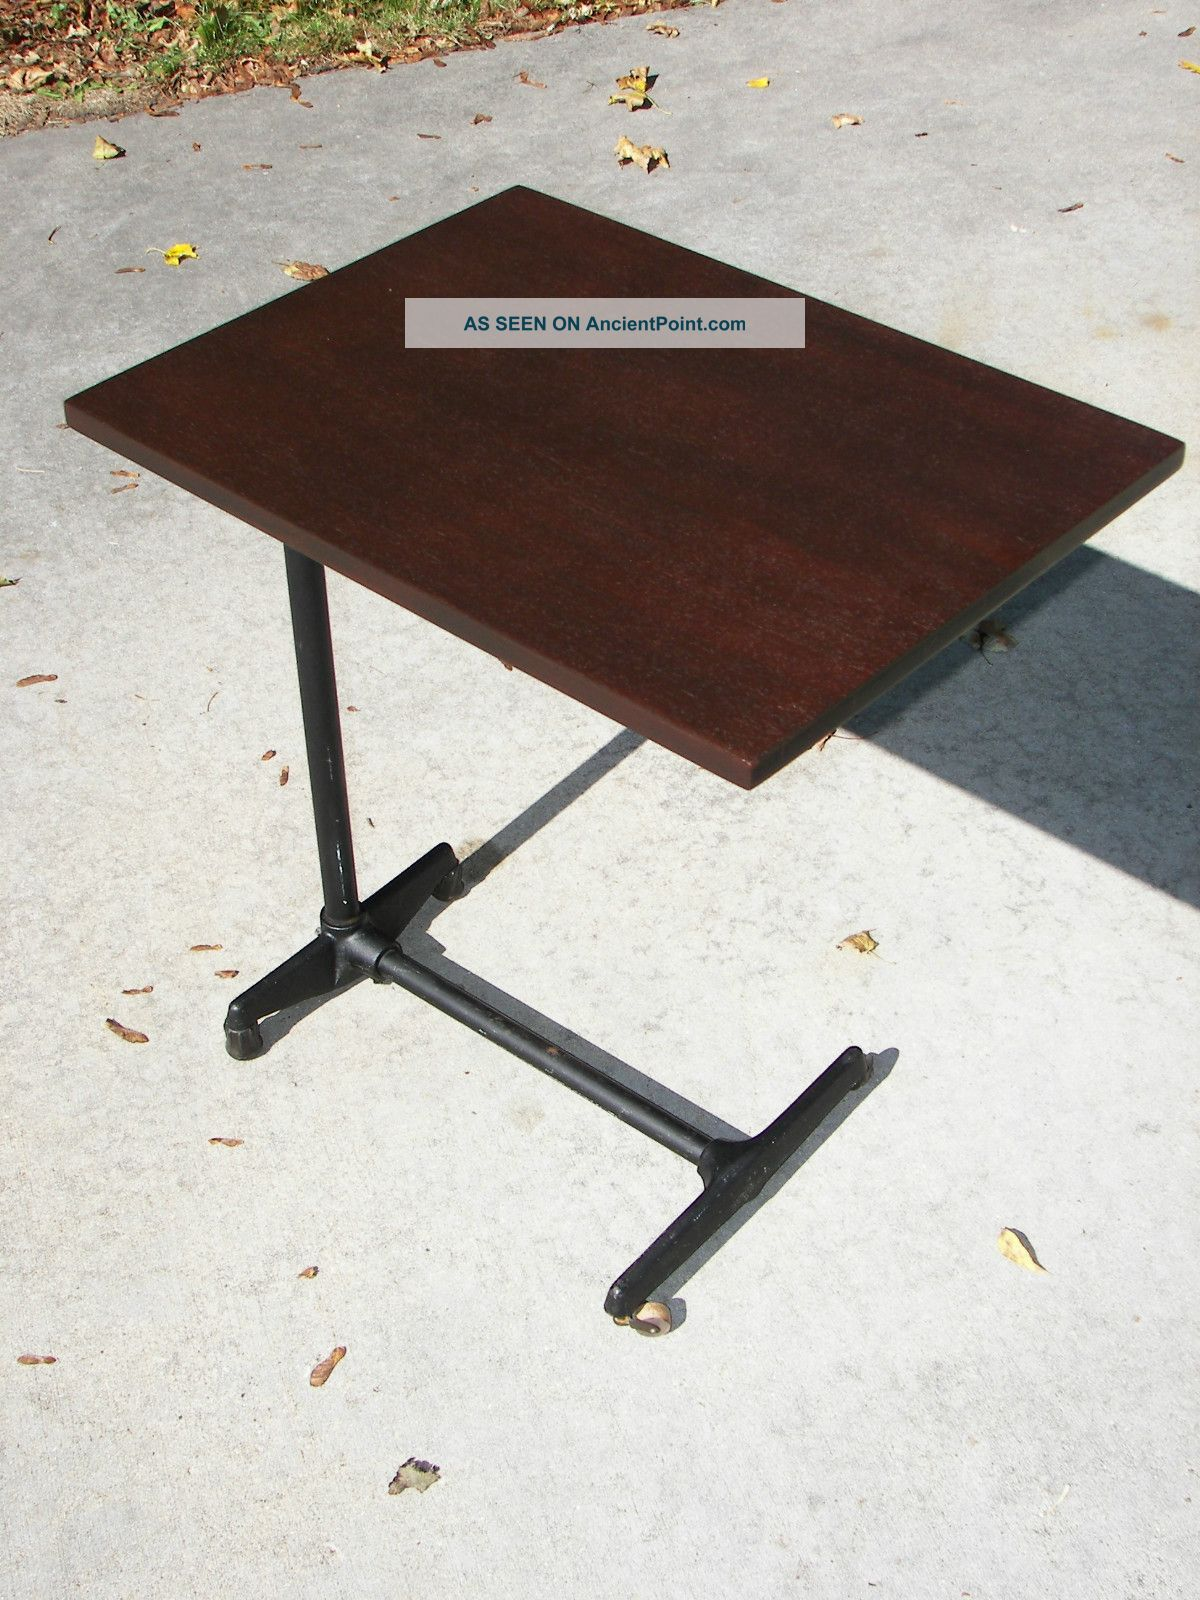 Vintage Industrial Serving Tray Table Stand Steampunk Cast Iron Base  Adjustable